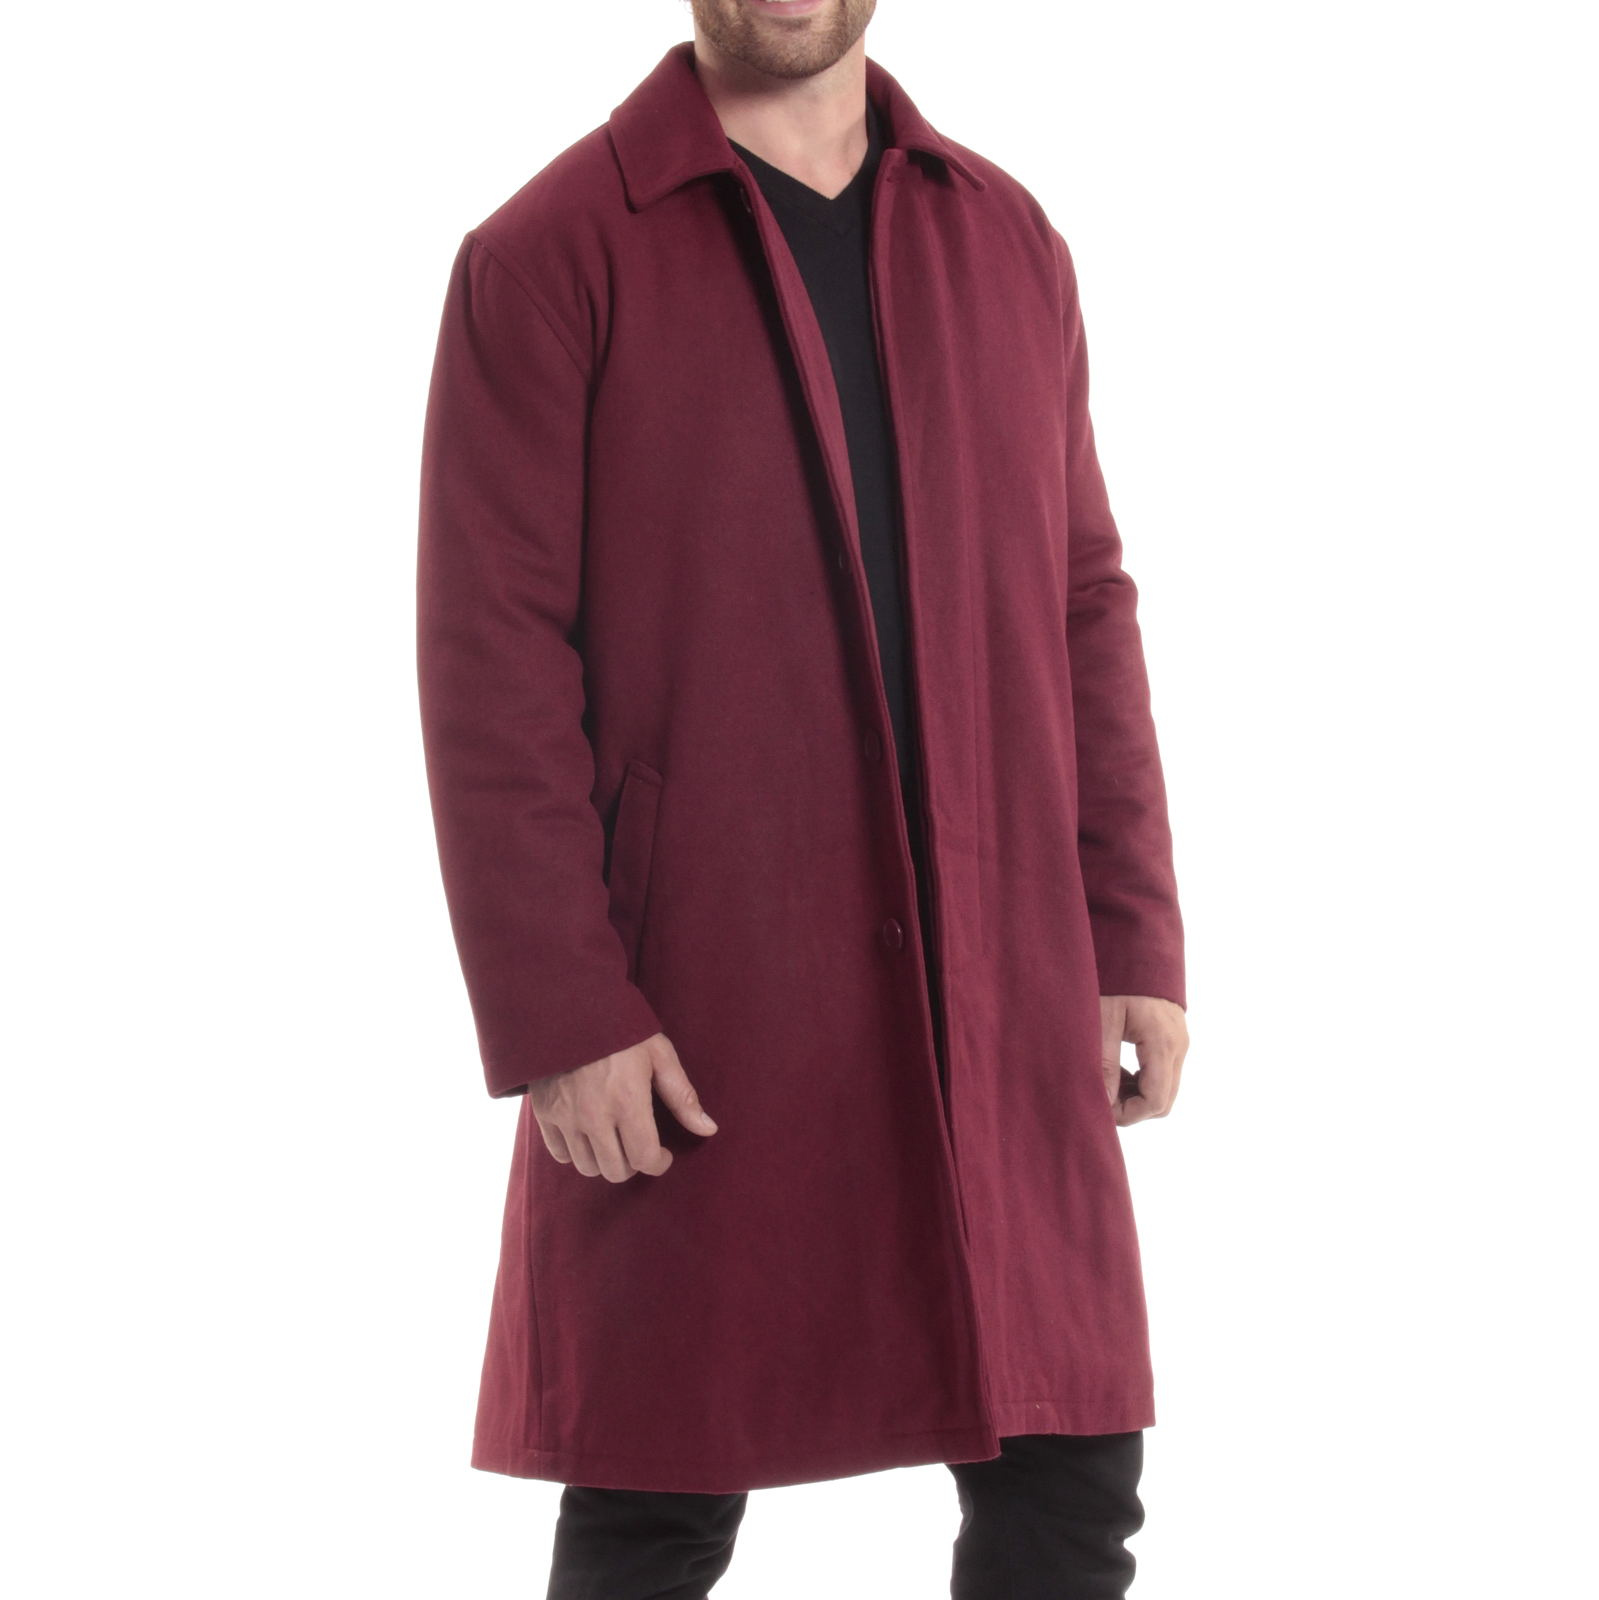 Alpine-Swiss-Mens-Zach-Knee-Length-Jacket-Top-Coat-Trench-Wool-Blend-Overcoat thumbnail 27